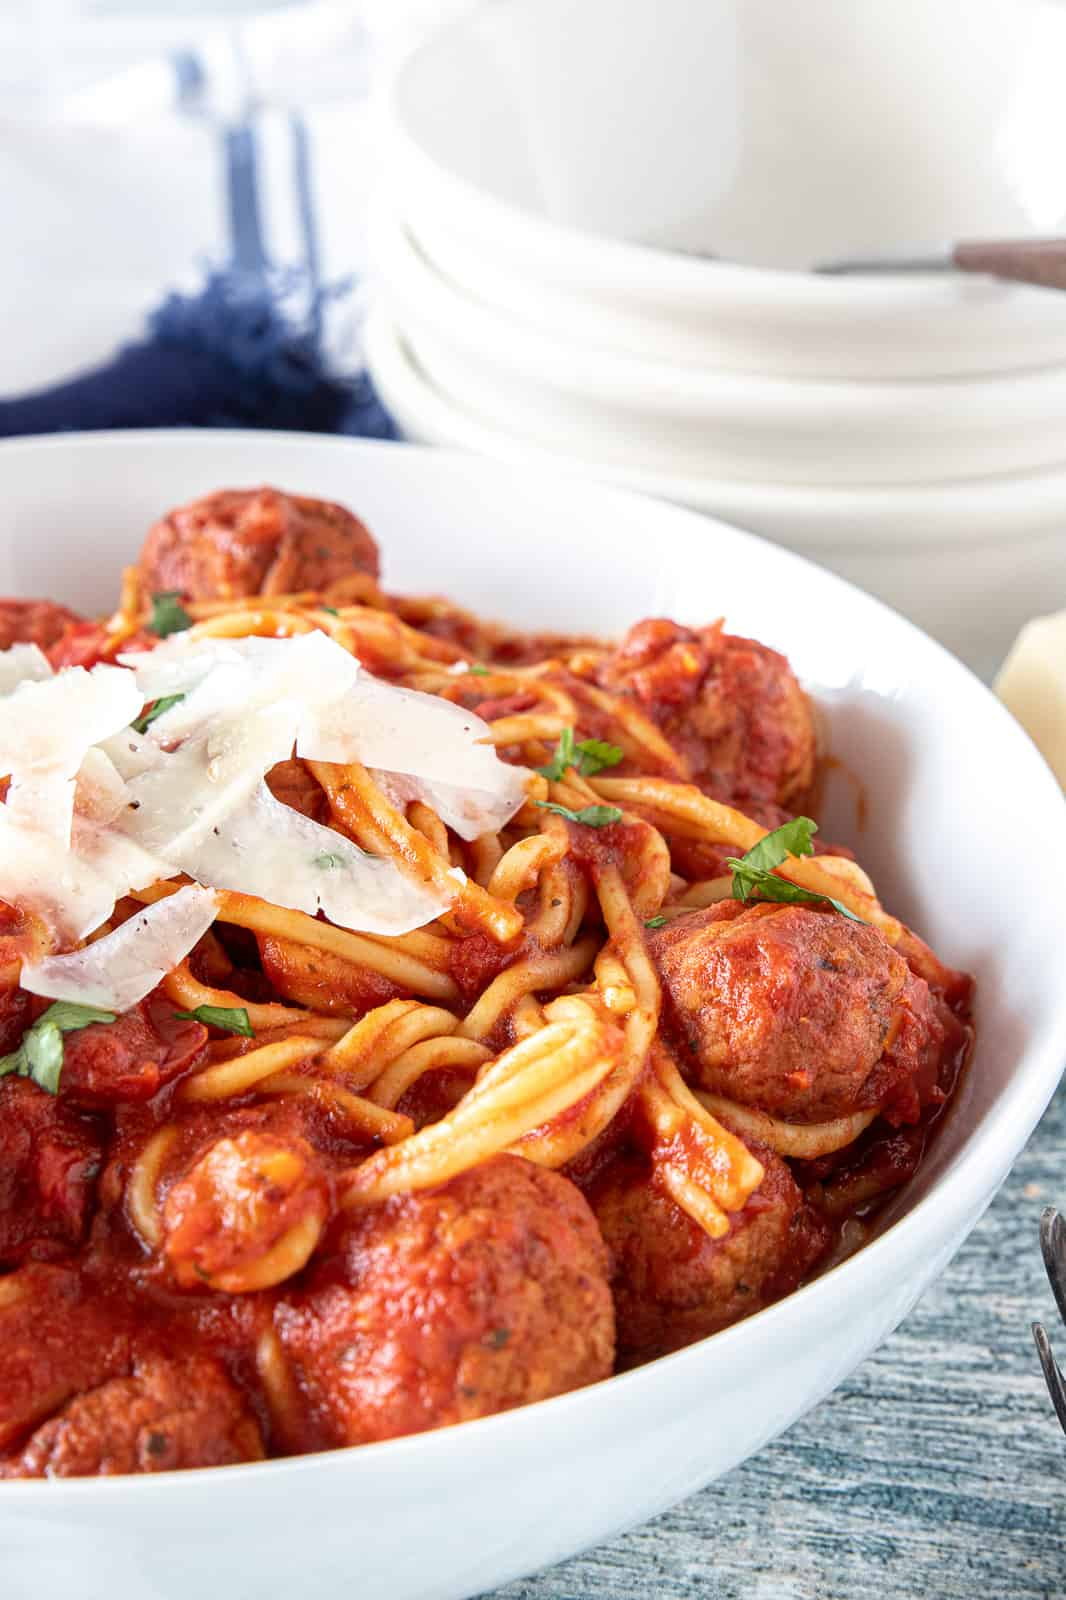 instant pot spaghetti in a serving bowl.